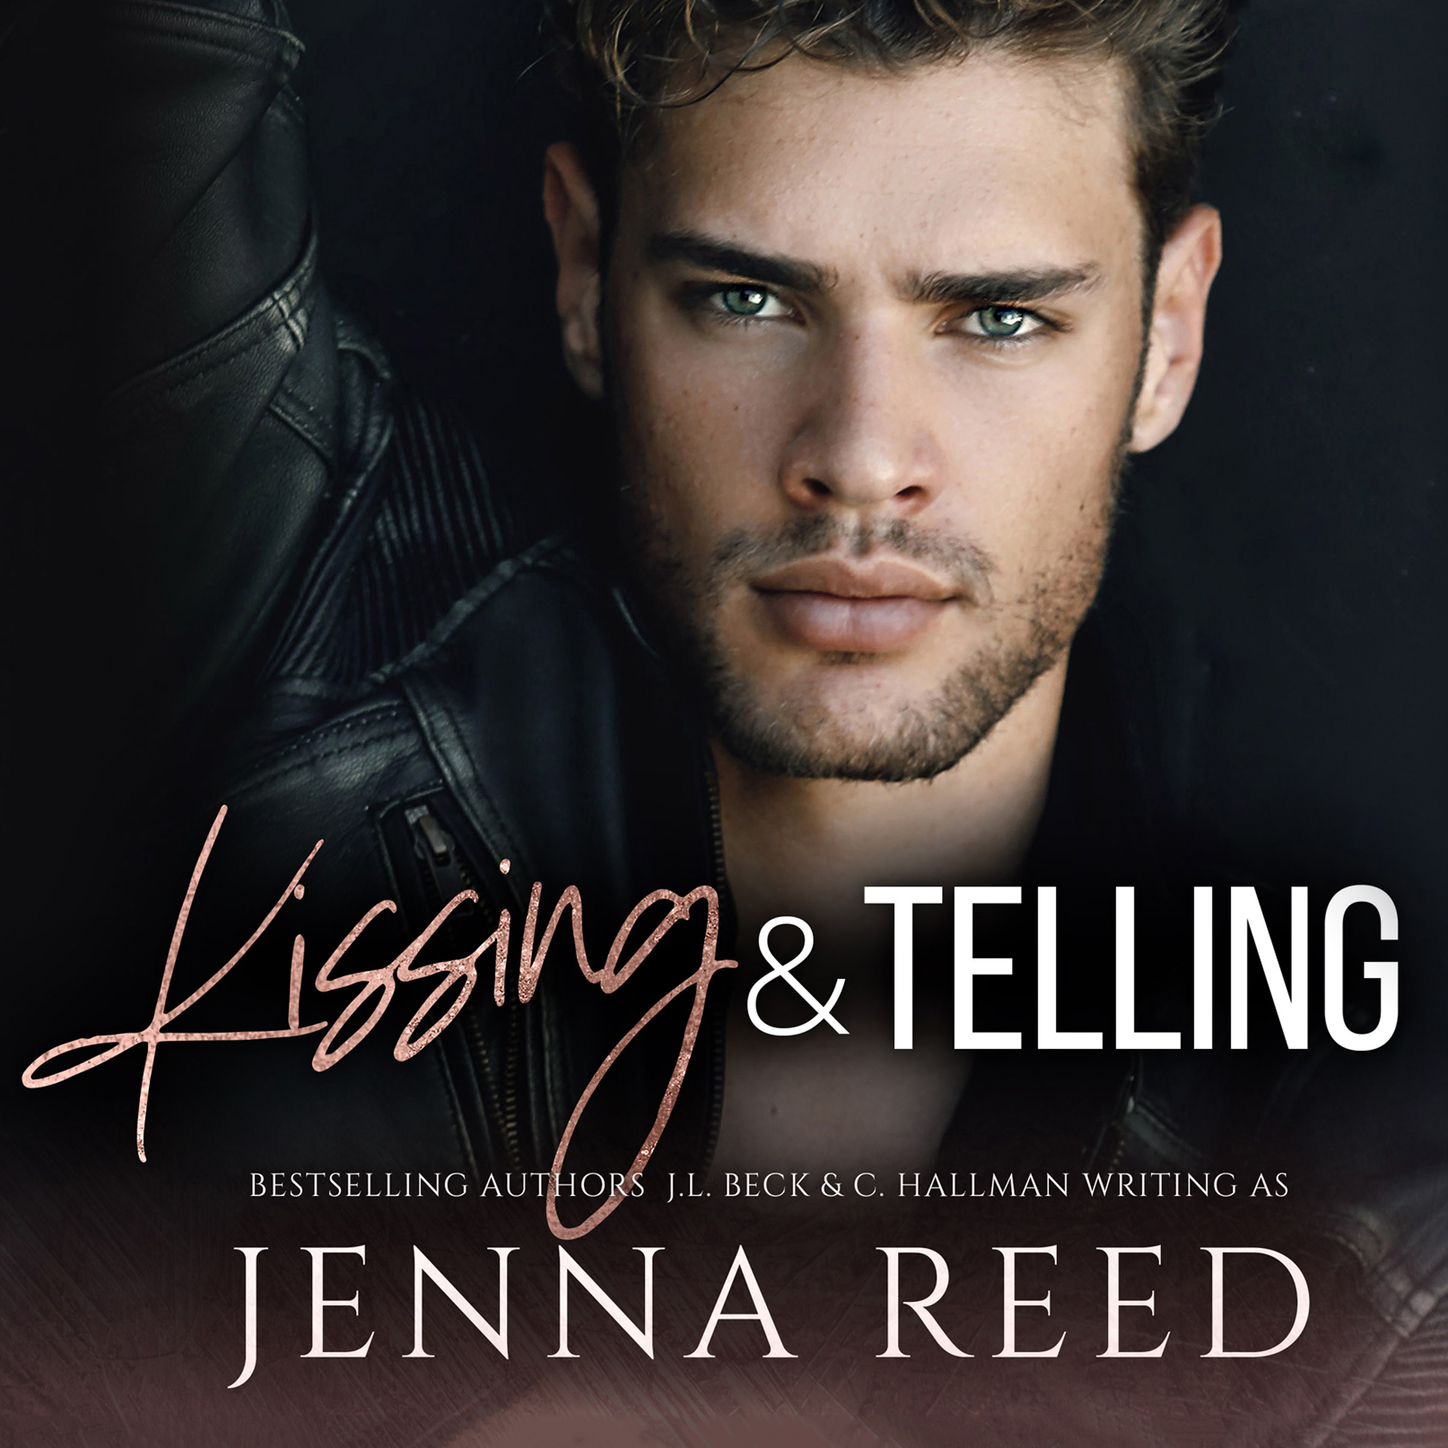 Jenna Reed Kissing and Telling - Friends To Lovers Romance - Breaking the Rules, Book 1 (Unabridged) julia wolf times like these a rock star romance blue is the color book 1 unabridged